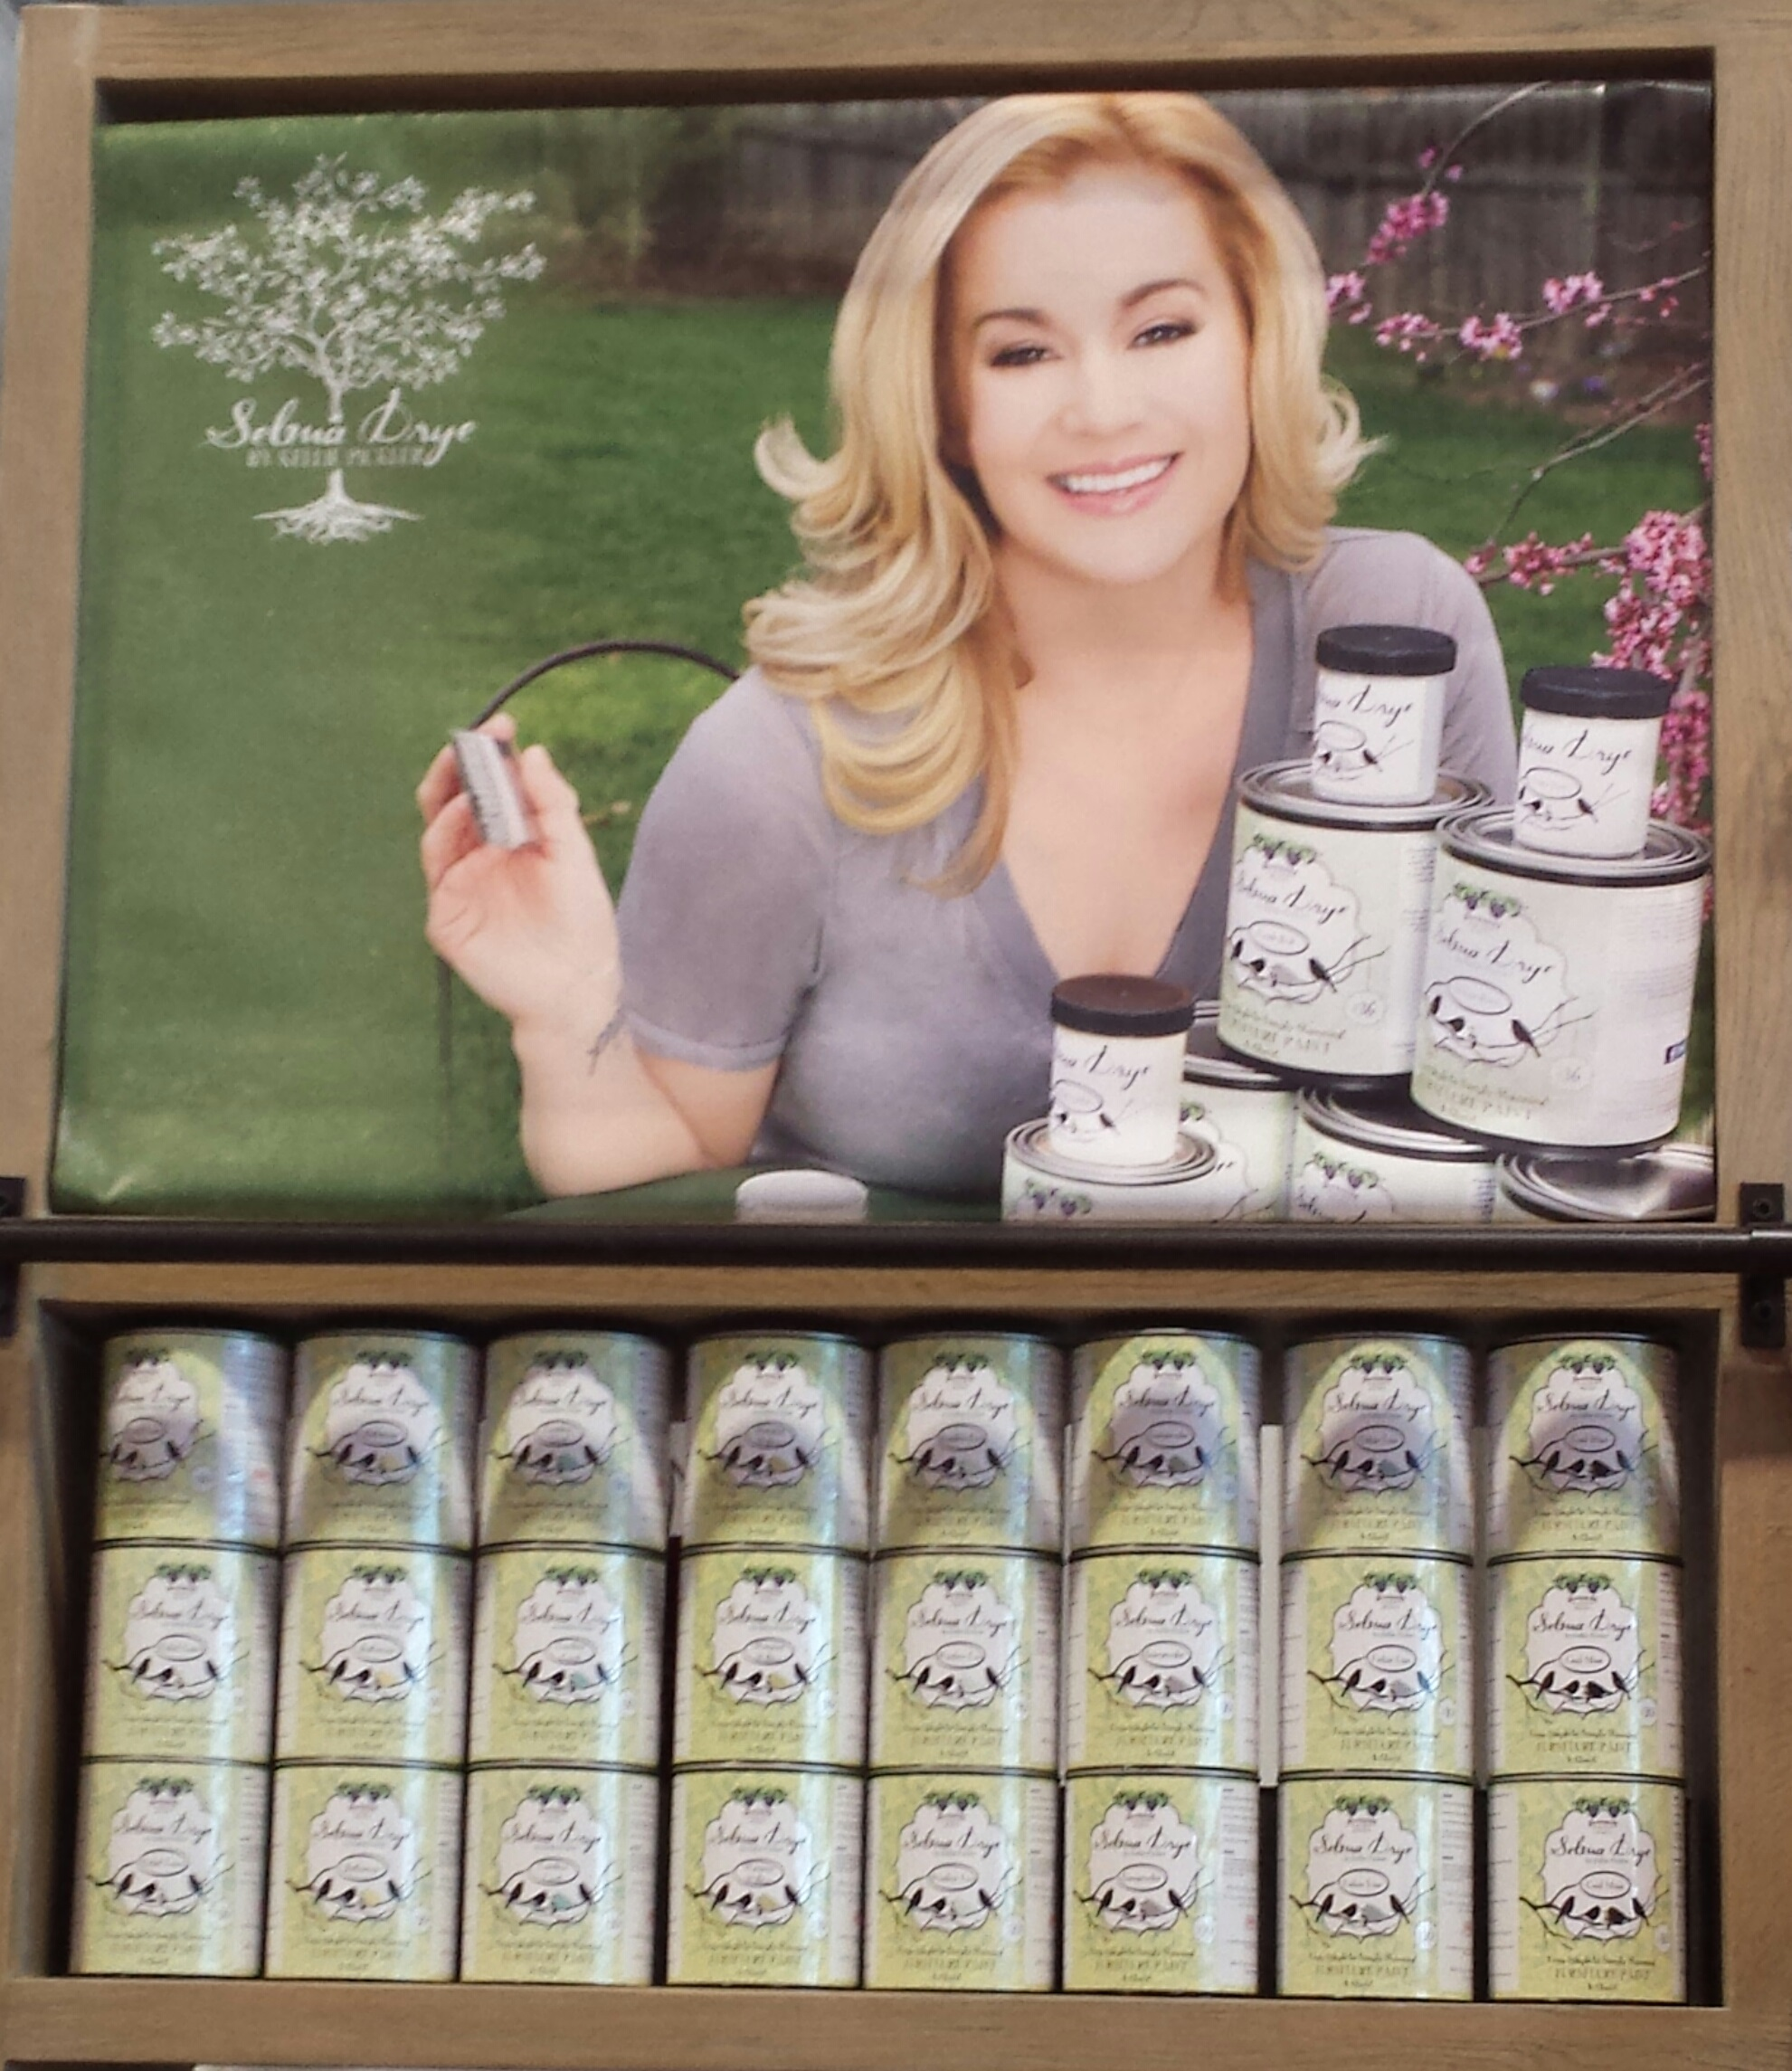 Selma Drye by Kellie Pickler, A private label line for Opry Entertainment